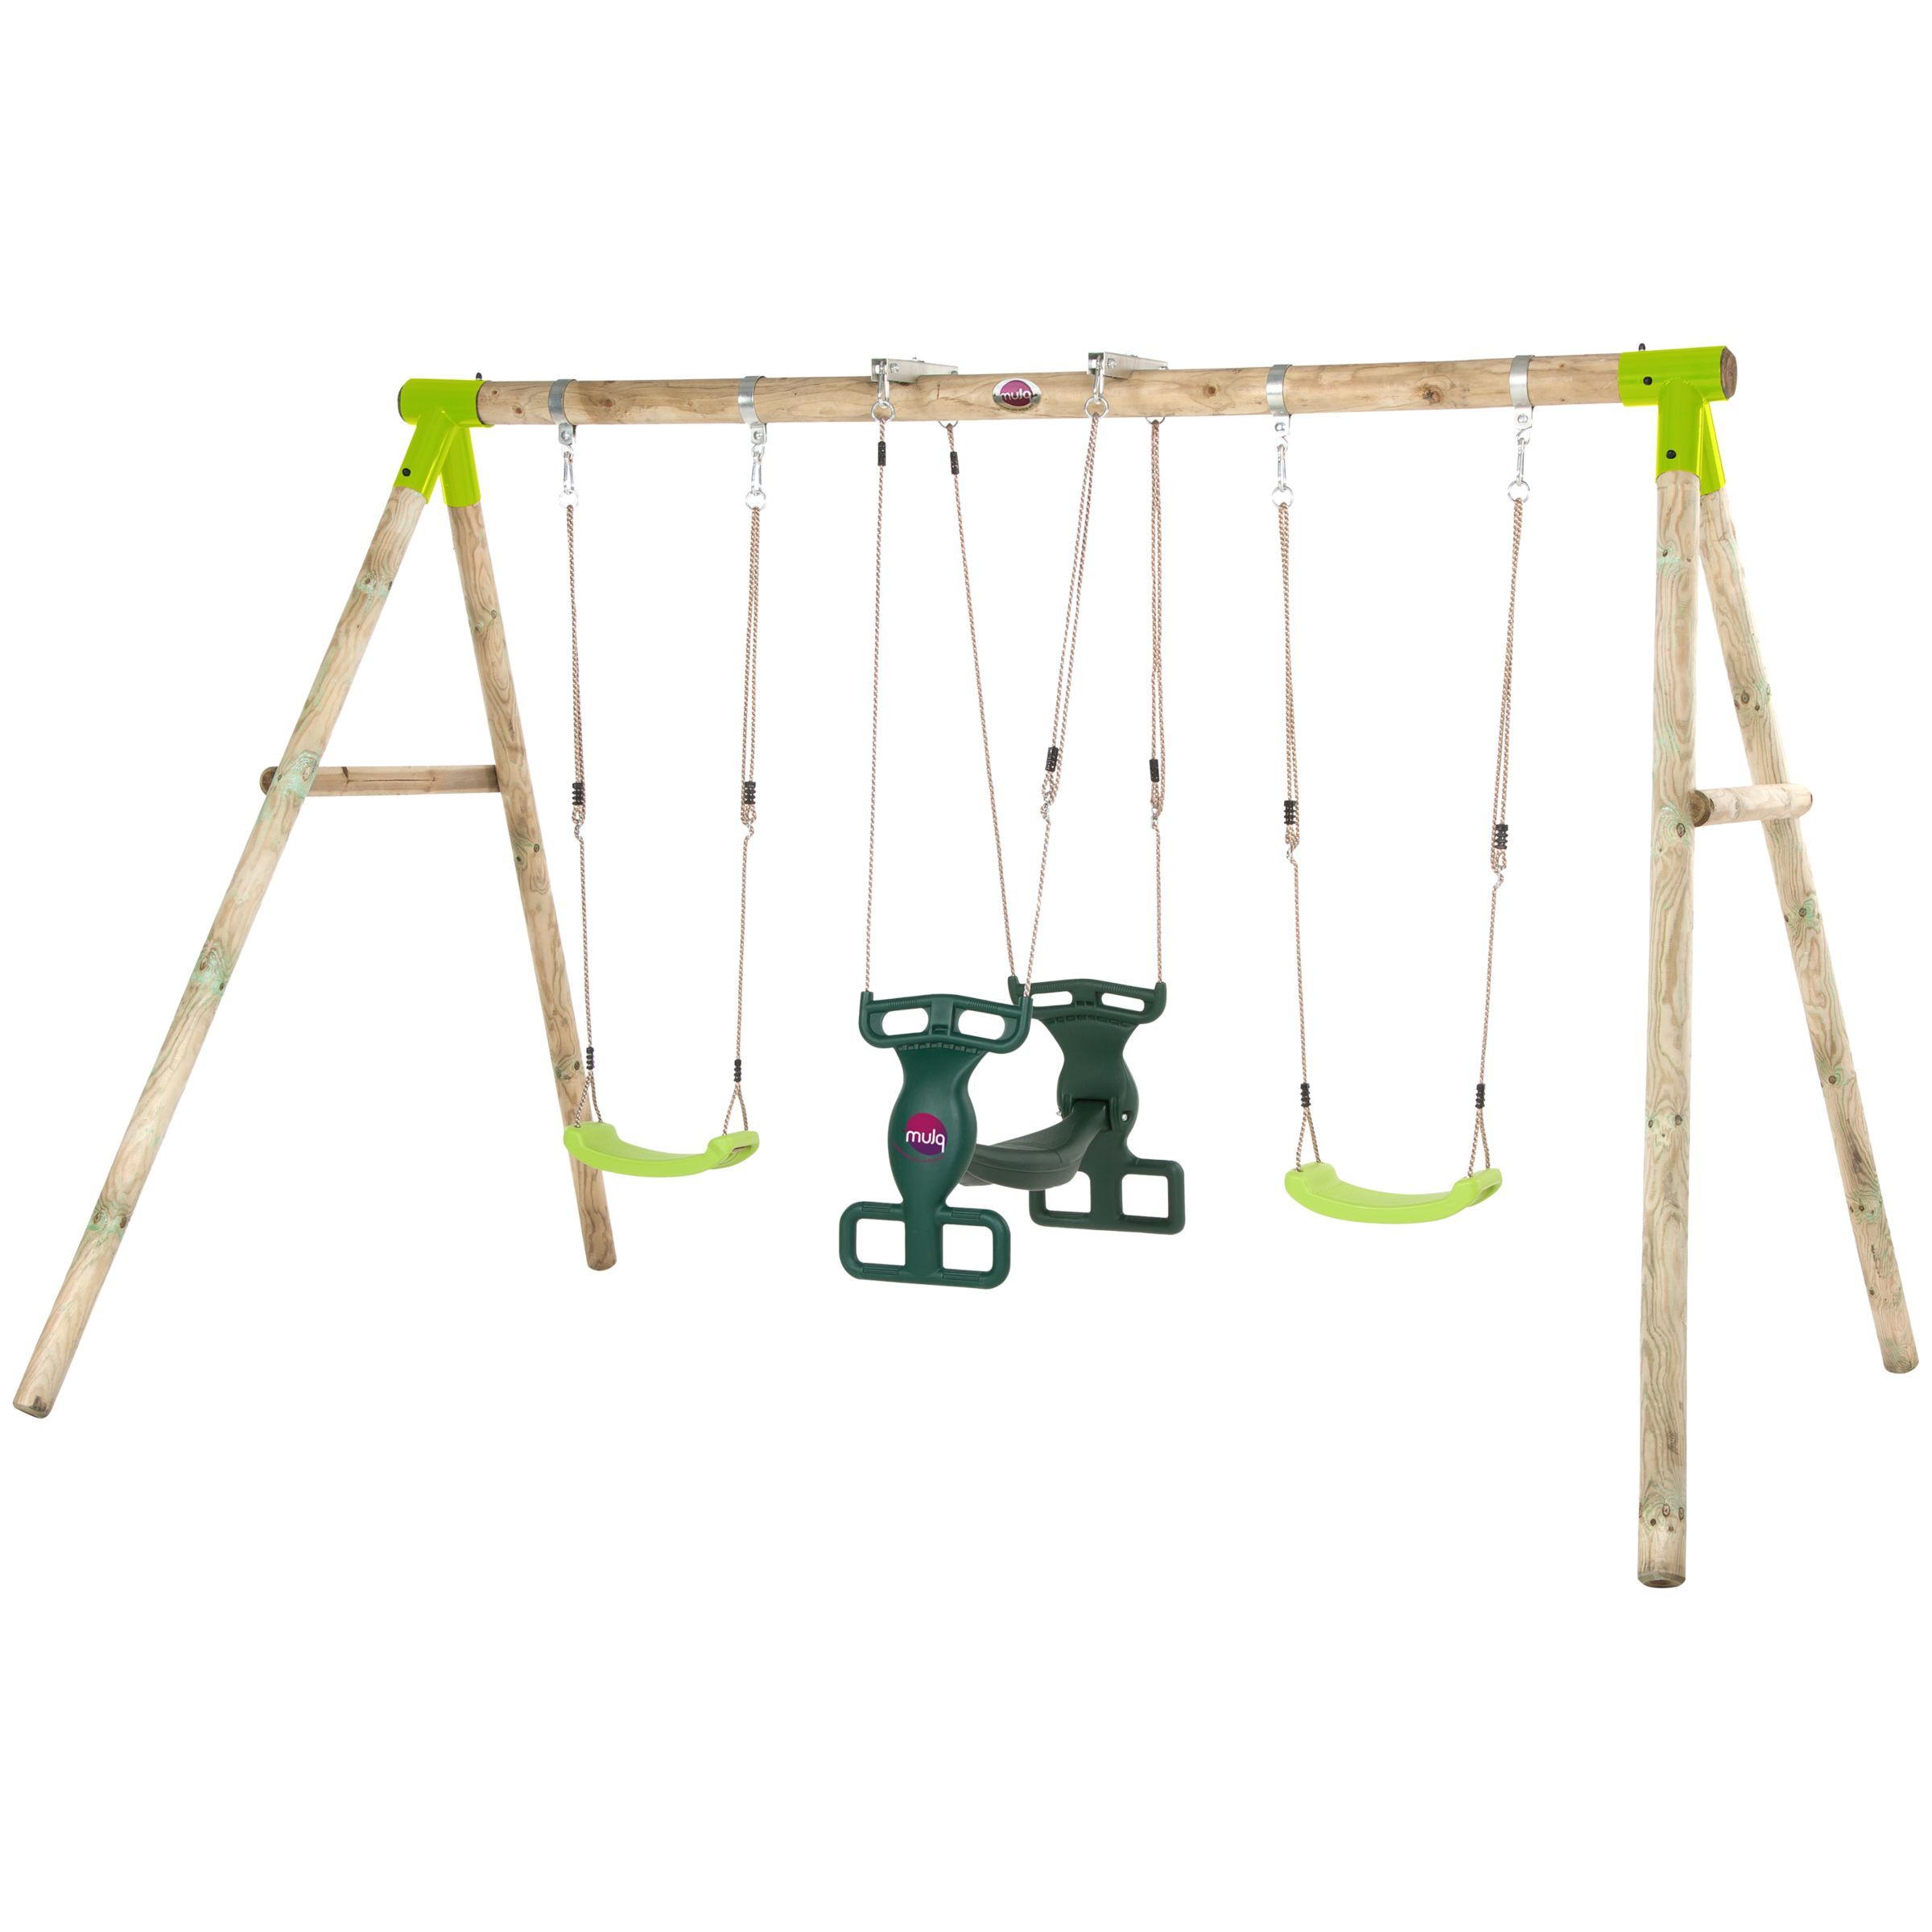 Dual Rider Glider Swings With Soft Touch Rope Throughout Popular Plum Vervet Wood Swing Set (View 7 of 25)